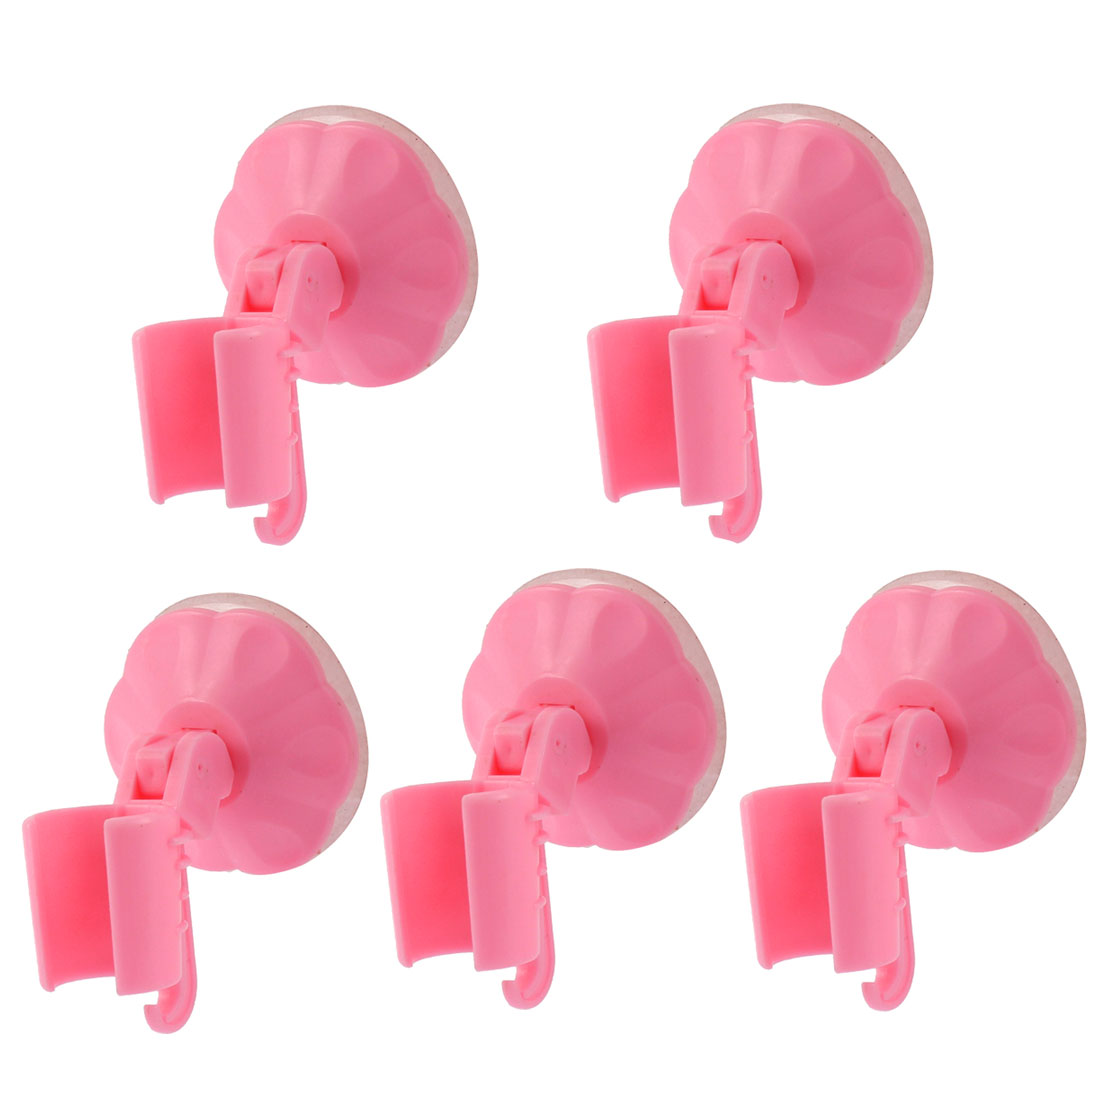 Bathroom Wall Mounted Suction Cup Shower Head Holder Bracket Pink 5pcs